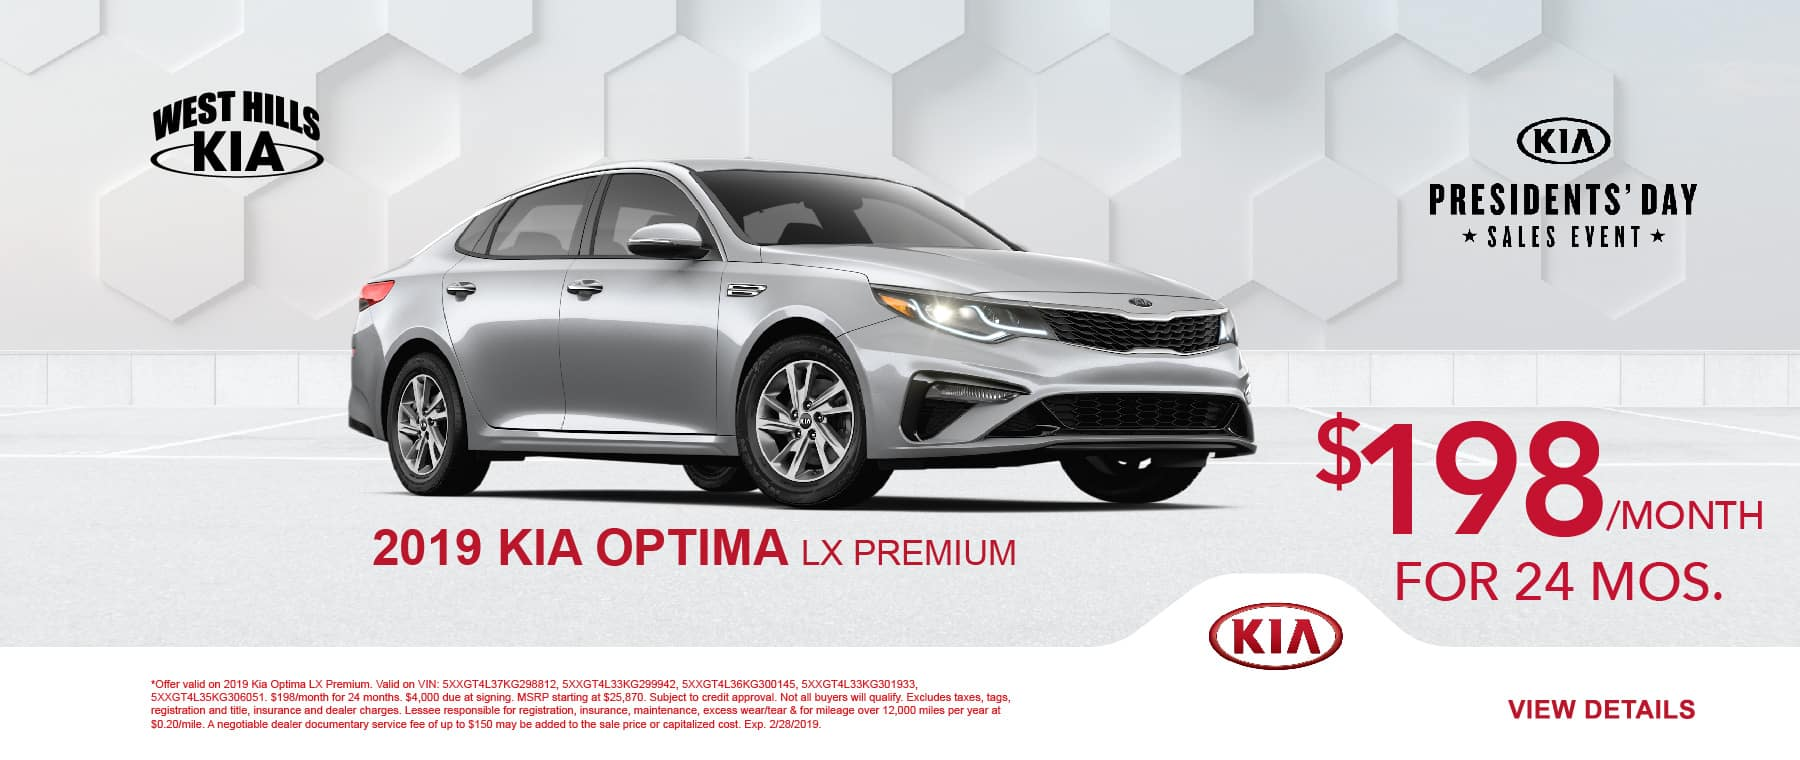 2019 Kia Optima LX Premium $198/month for 24 months    Offer valid on 2019 Kia Optima LX Premium. Valid on VIN: 5XXGT4L37KG298812, 5XXGT4L33KG299942, 5XXGT4L36KG300145, 5XXGT4L33KG301933, 5XXGT4L35KG306051. $198/month for 24 months. $4,000 due at signing. MSRP starting at $25,870. Subject to credit approval. Not all buyers will qualify. Excludes taxes, tags, registration and title, insurance and dealer charges. Lessee responsible for registration, insurance, maintenance, excess wear/tear & for mileage over 12,000 miles per year at $0.20/mile. A negotiable dealer documentary service fee of up to $150 may be added to the sale price or capitalized cost. Exp. 2/28/2019.